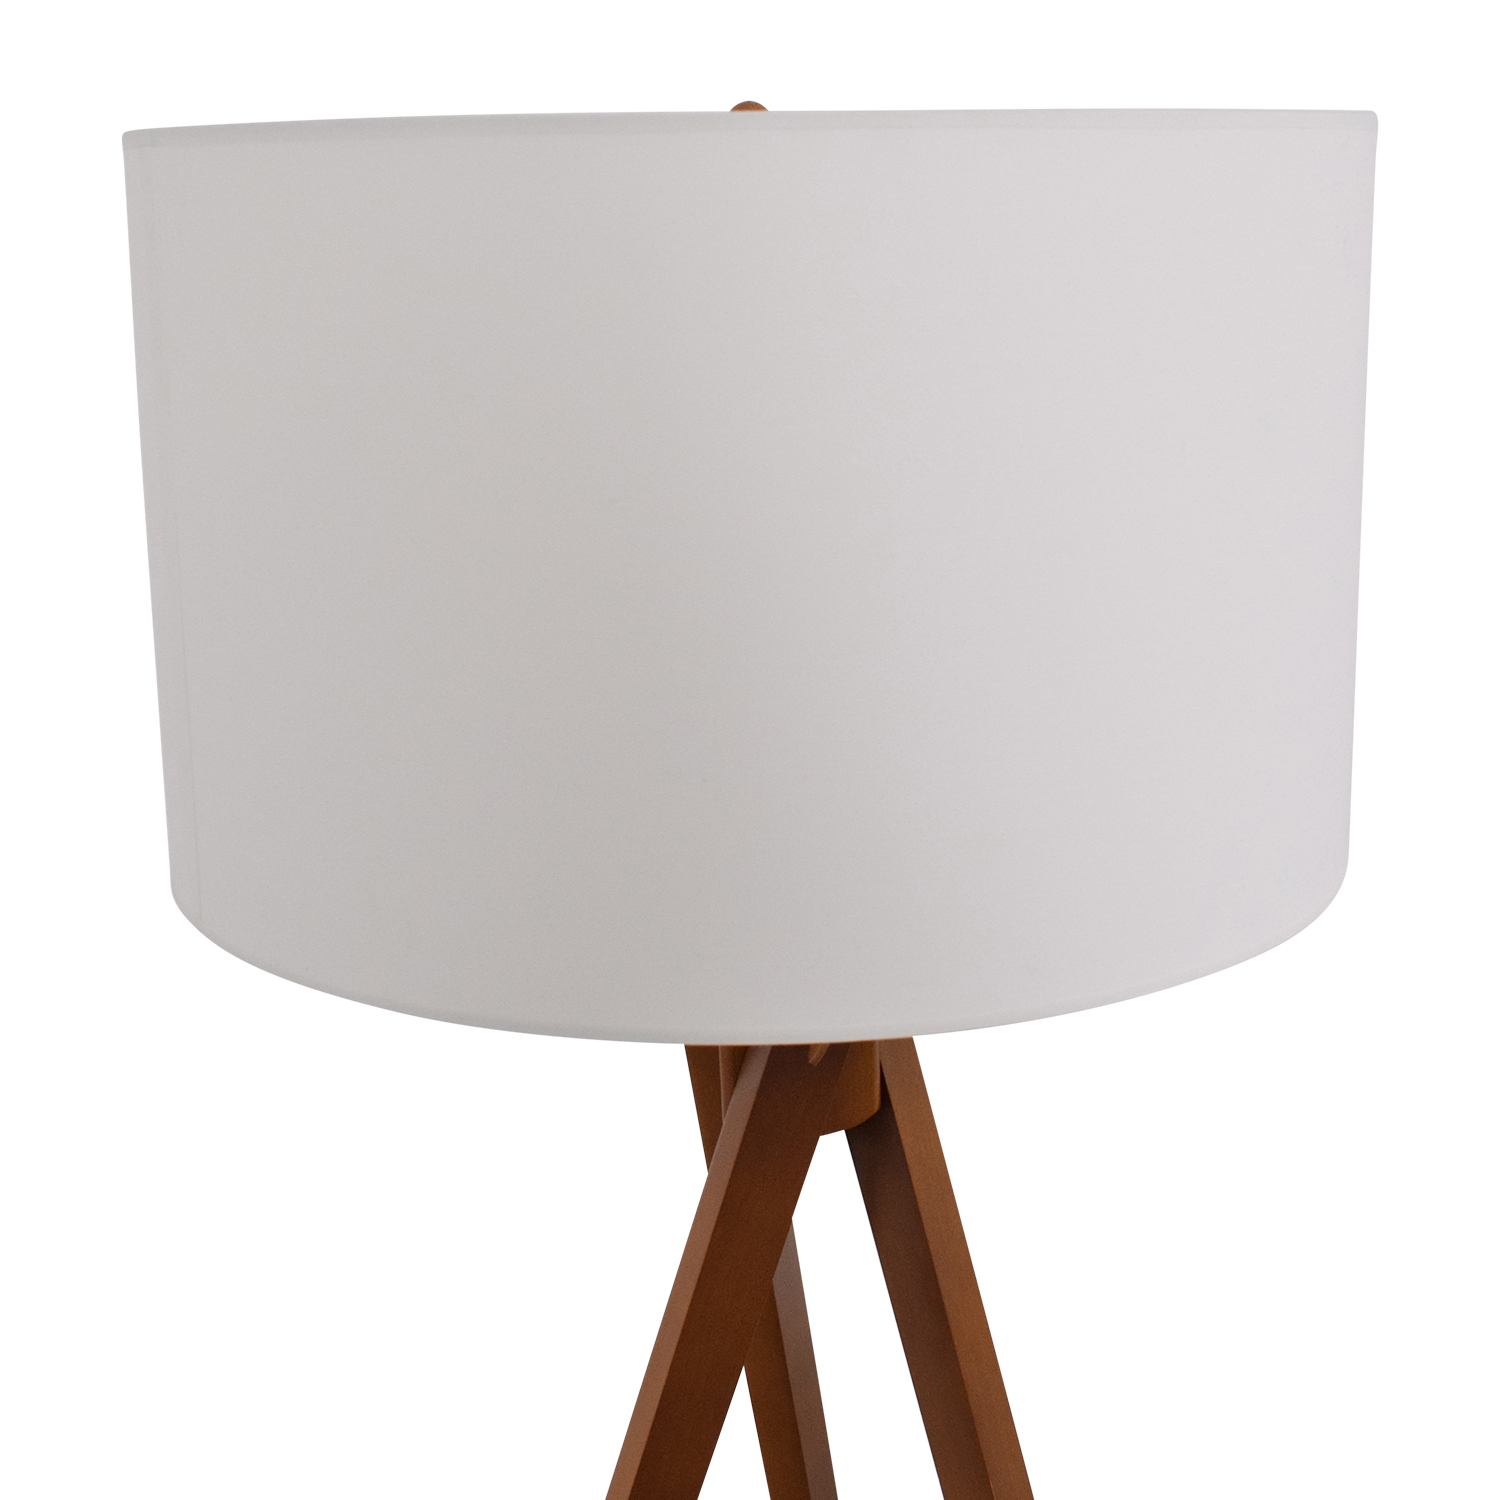 Modani Modani Boden Floor Lamp Decor